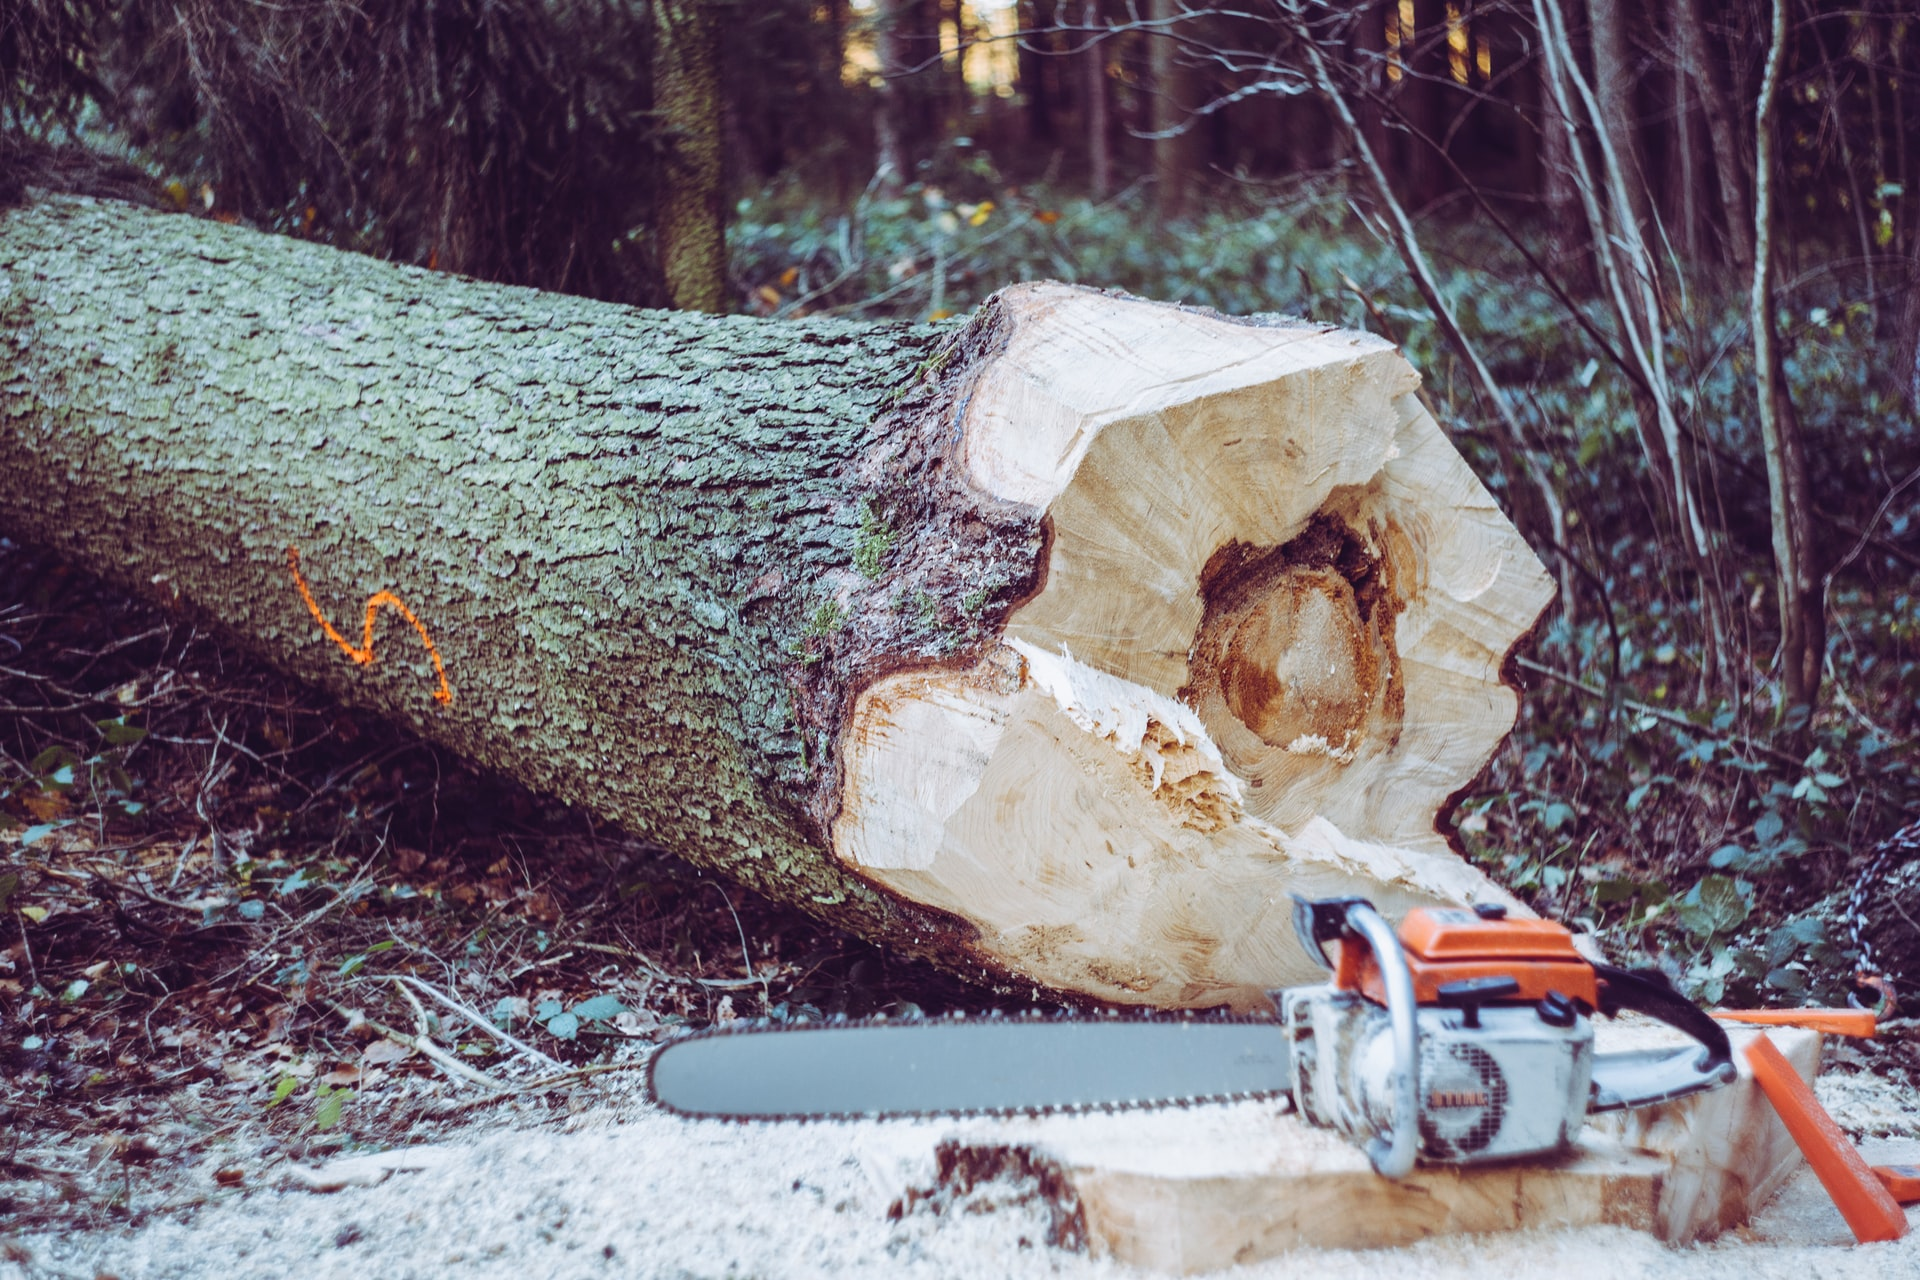 Photo of the trunk of a felled tree next to an electric saw